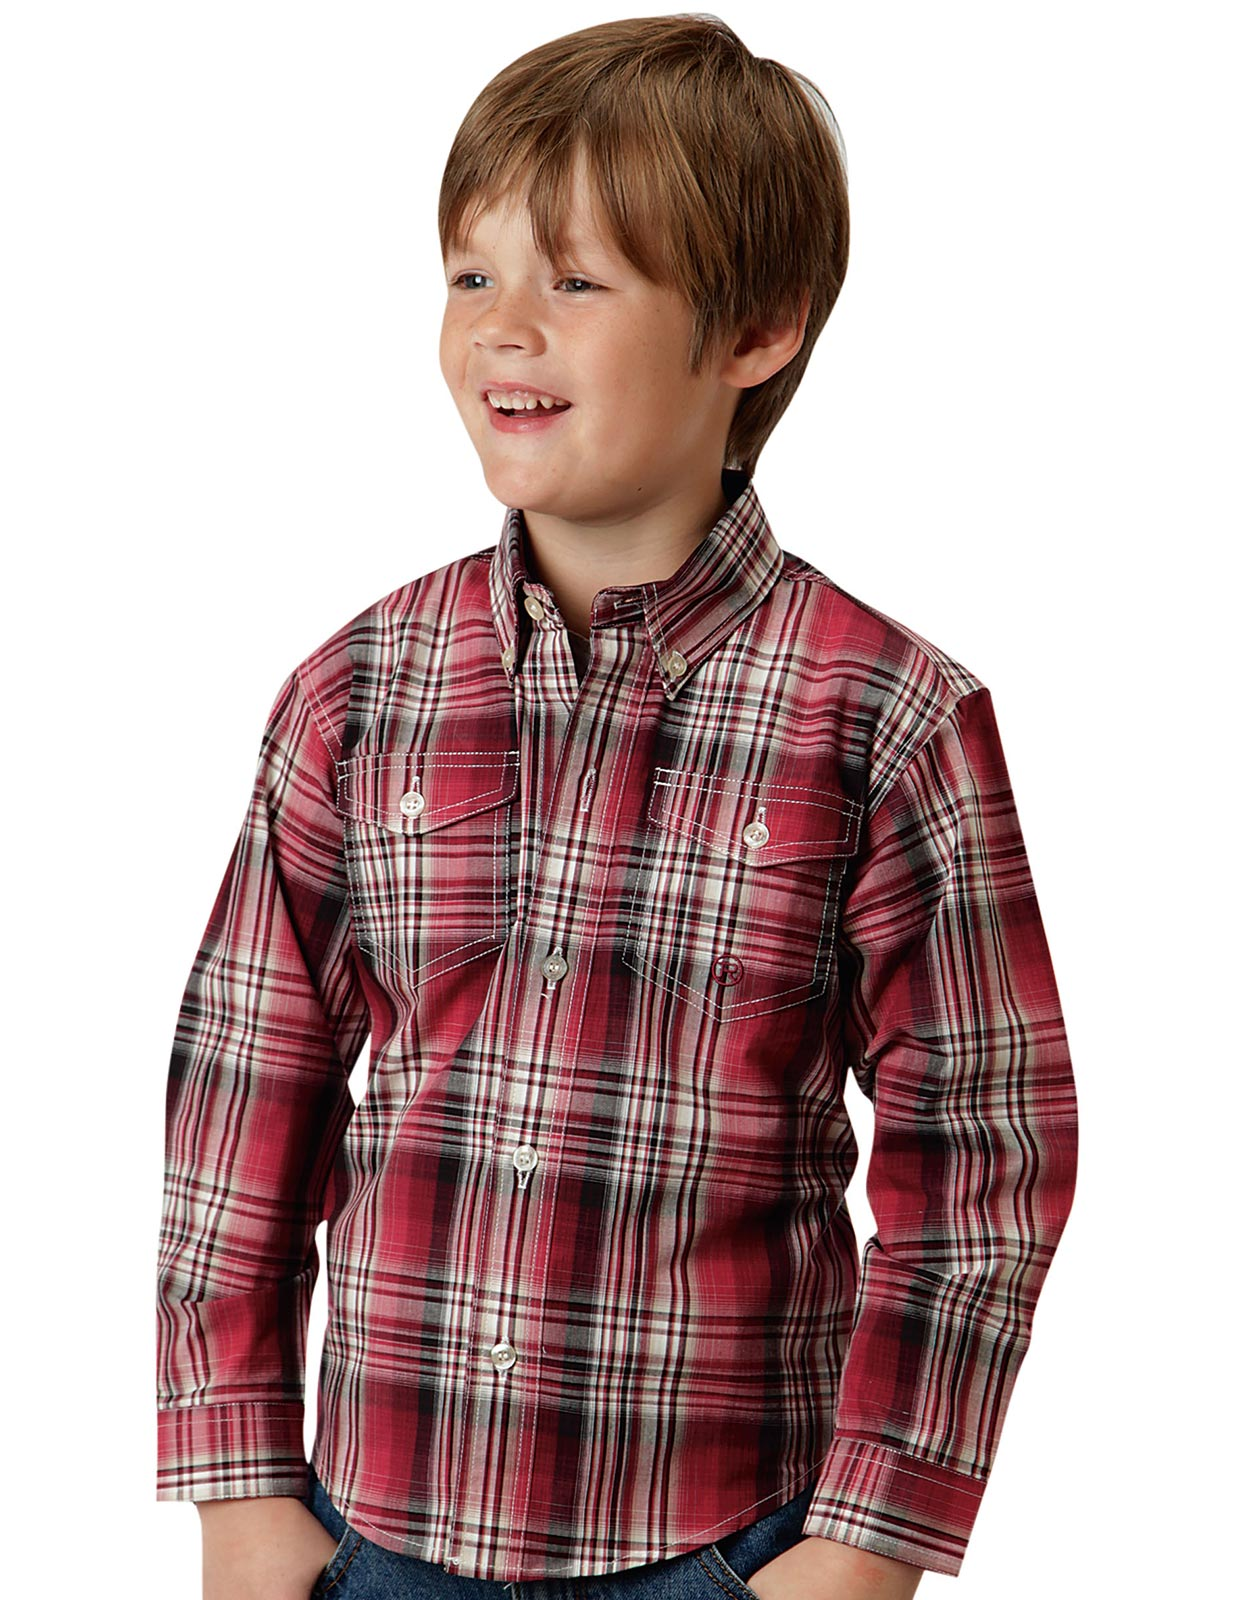 Find great deals on eBay for boys red button down shirt. Shop with confidence.